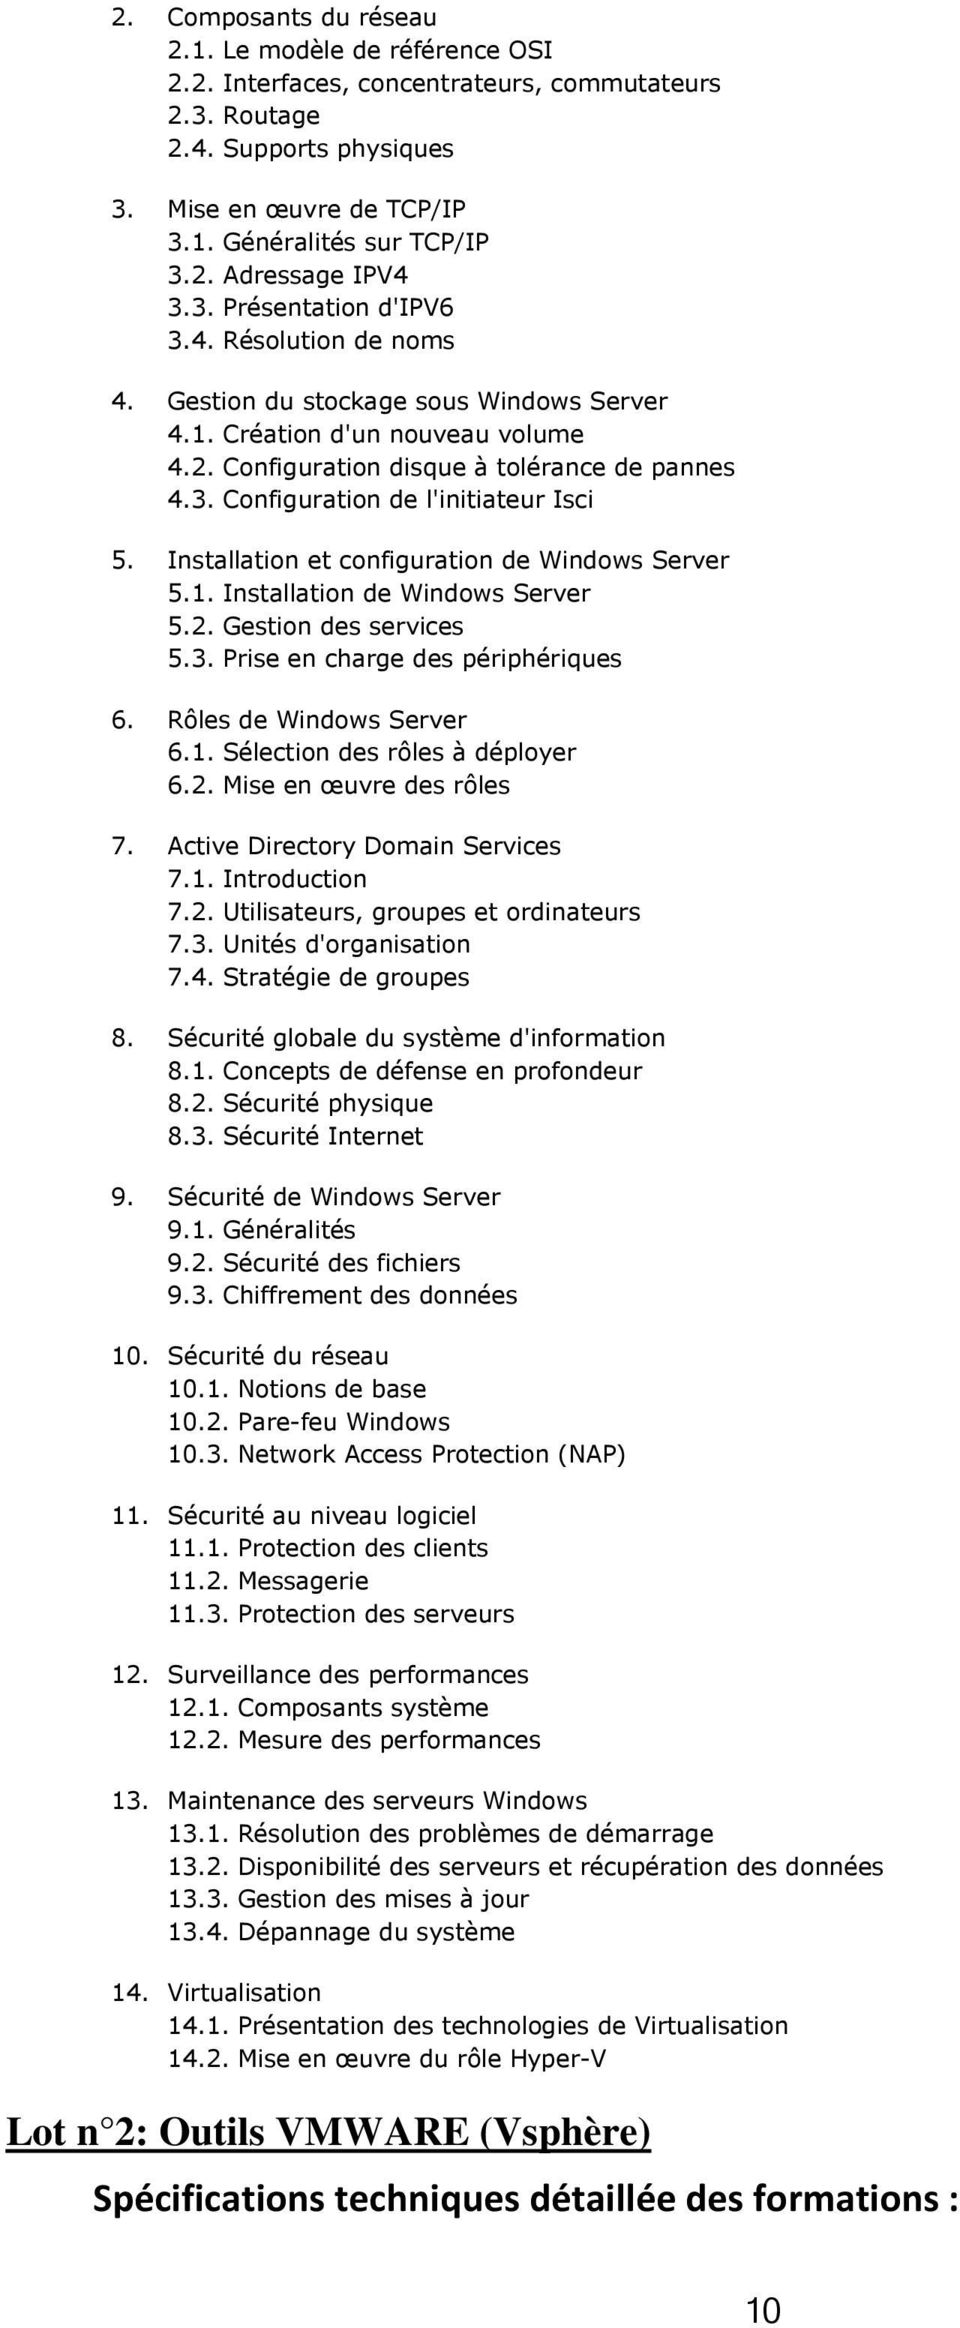 Installation et configuration de Windows Server 5.1. Installation de Windows Server 5.2. Gestion des services 5.3. Prise en charge des périphériques 6. Rôles de Windows Server 6.1. Sélection des rôles à déployer 6.